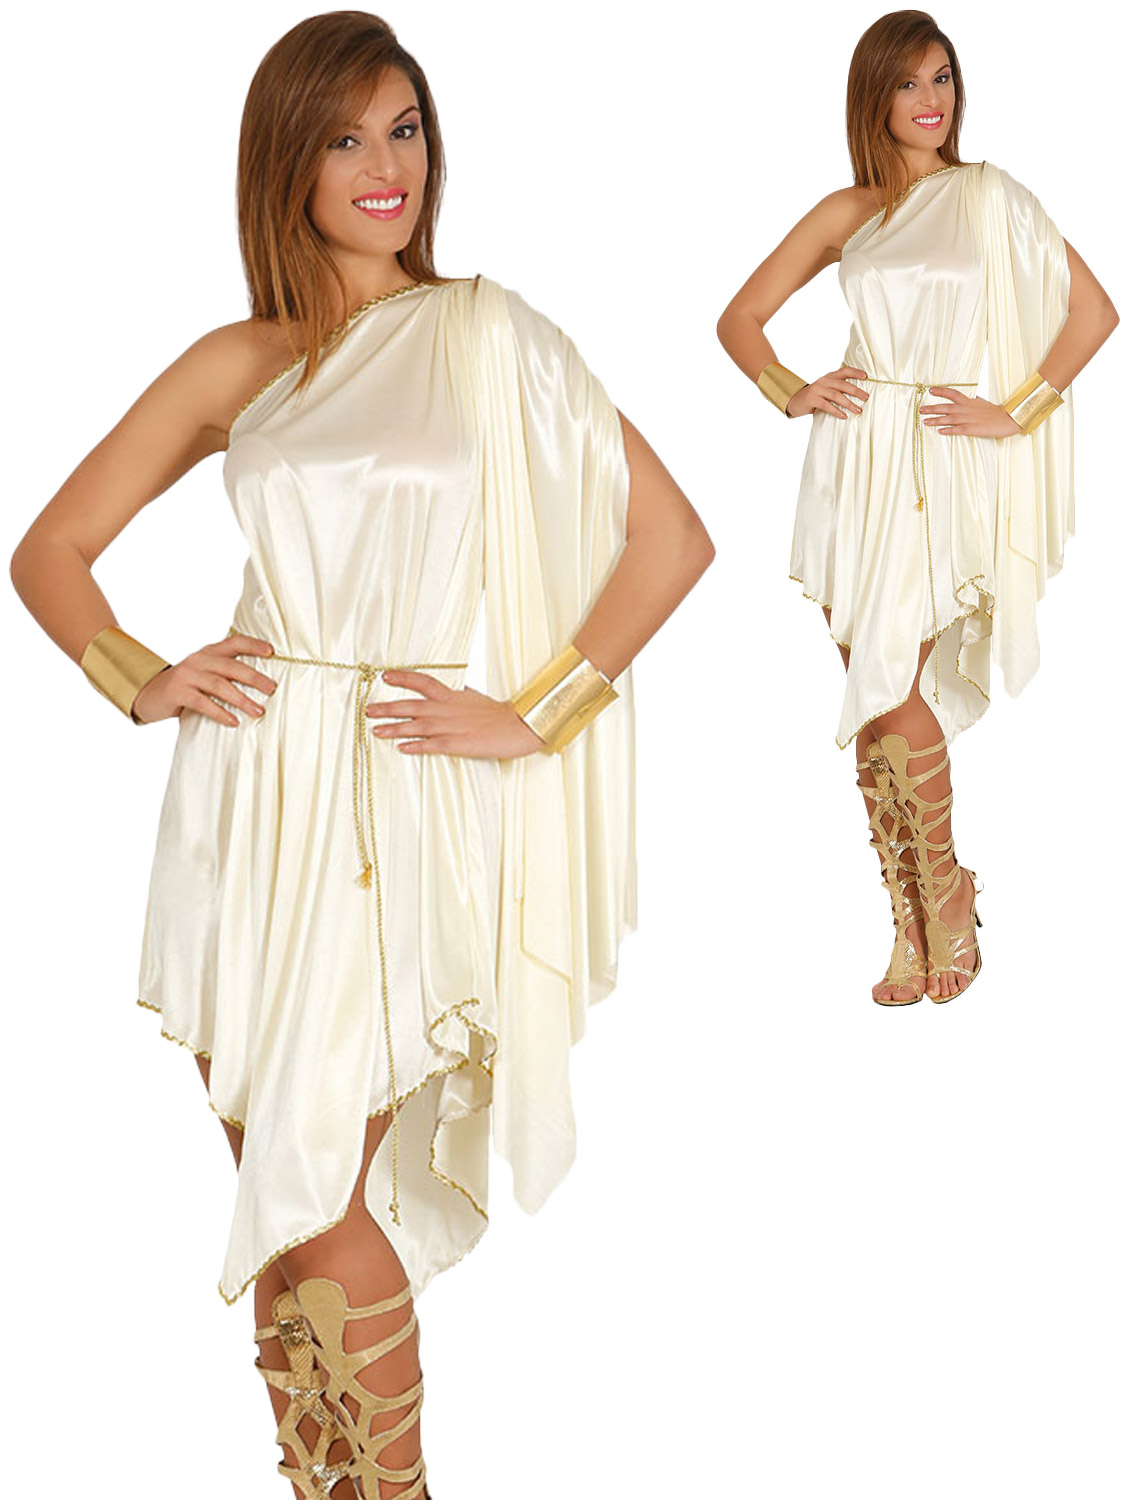 Ladies greek goddess costume adults roman grecian toga fancy dress transform yourself into a beautiful greek goddess with this ladies toga costume ideal if you are going to a greek roman themed fancy dress party solutioingenieria Gallery